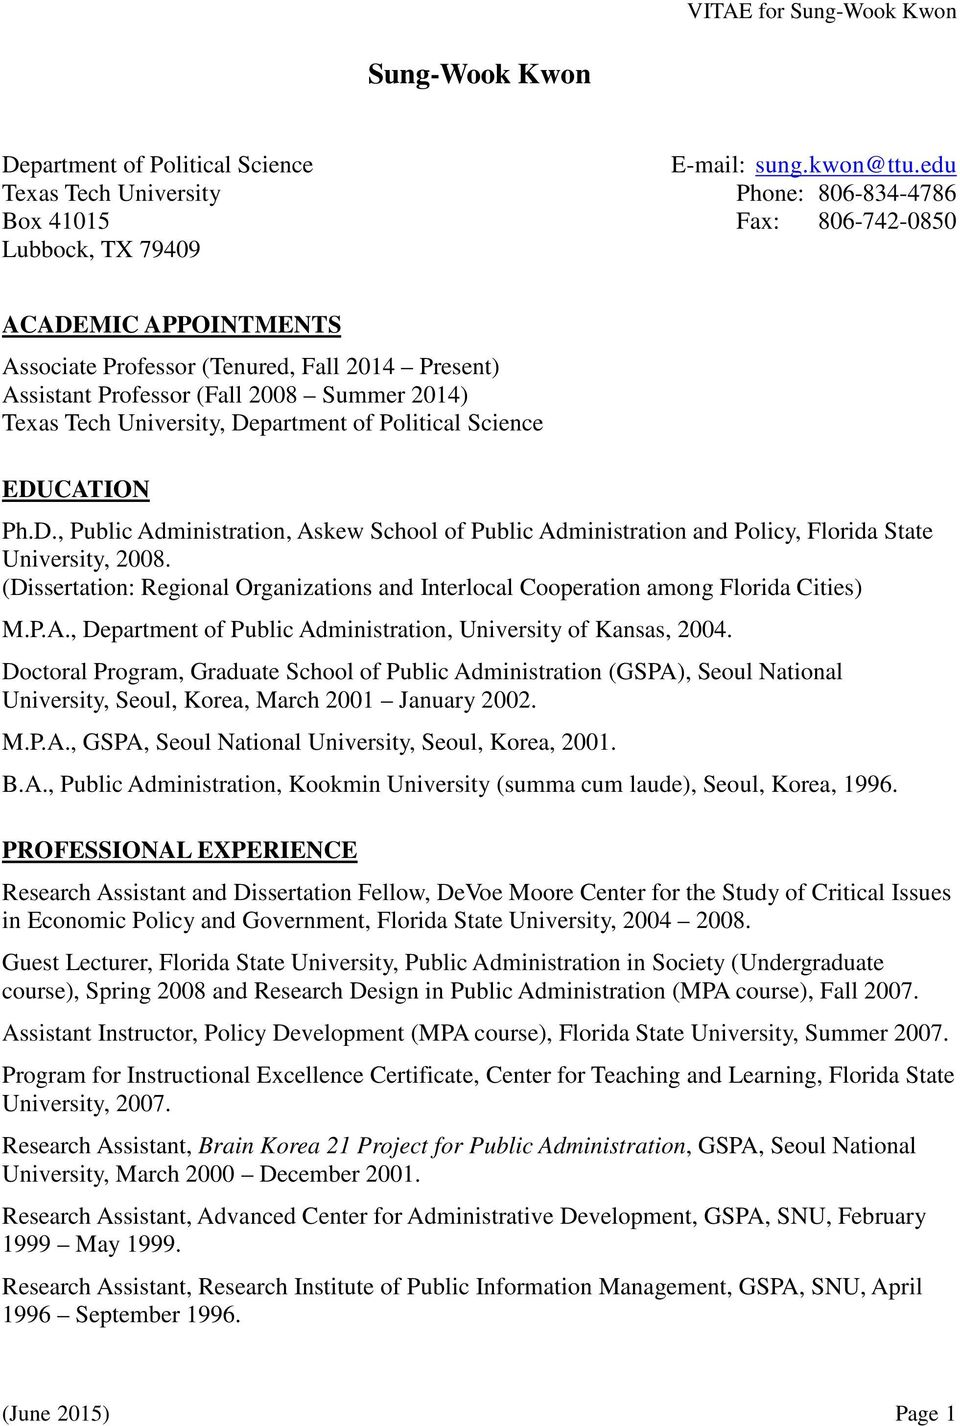 Summer 2014) Texas Tech University, Department of Political Science EDUCATION Ph.D., Public Administration, Askew School of Public Administration and Policy, Florida State University, 2008.